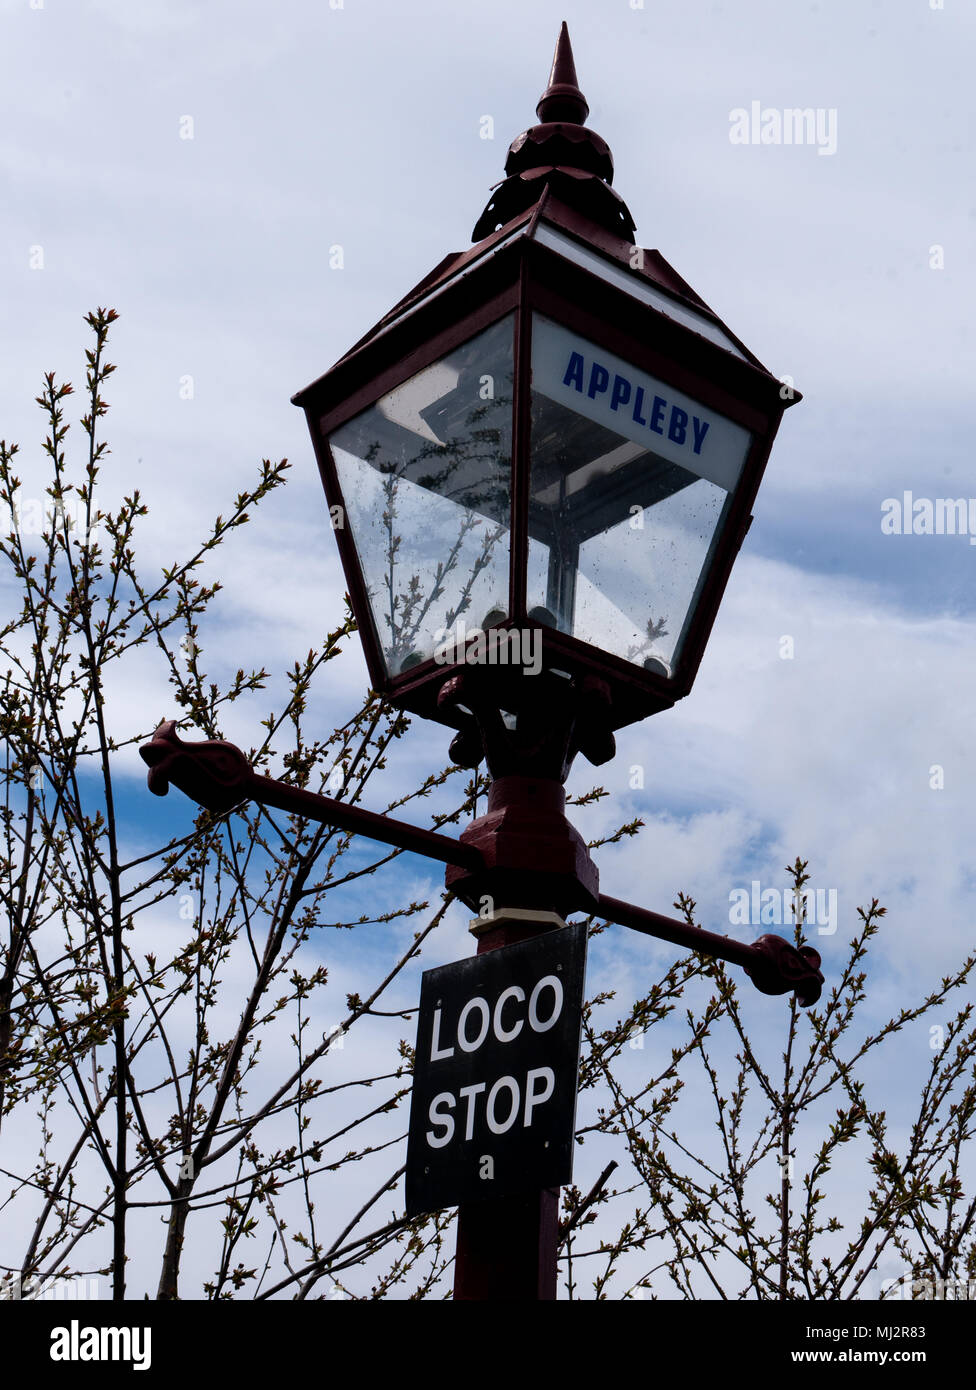 Old gas lamp on the plaform of Appleby railway station, Cumbria, UK - Stock Image